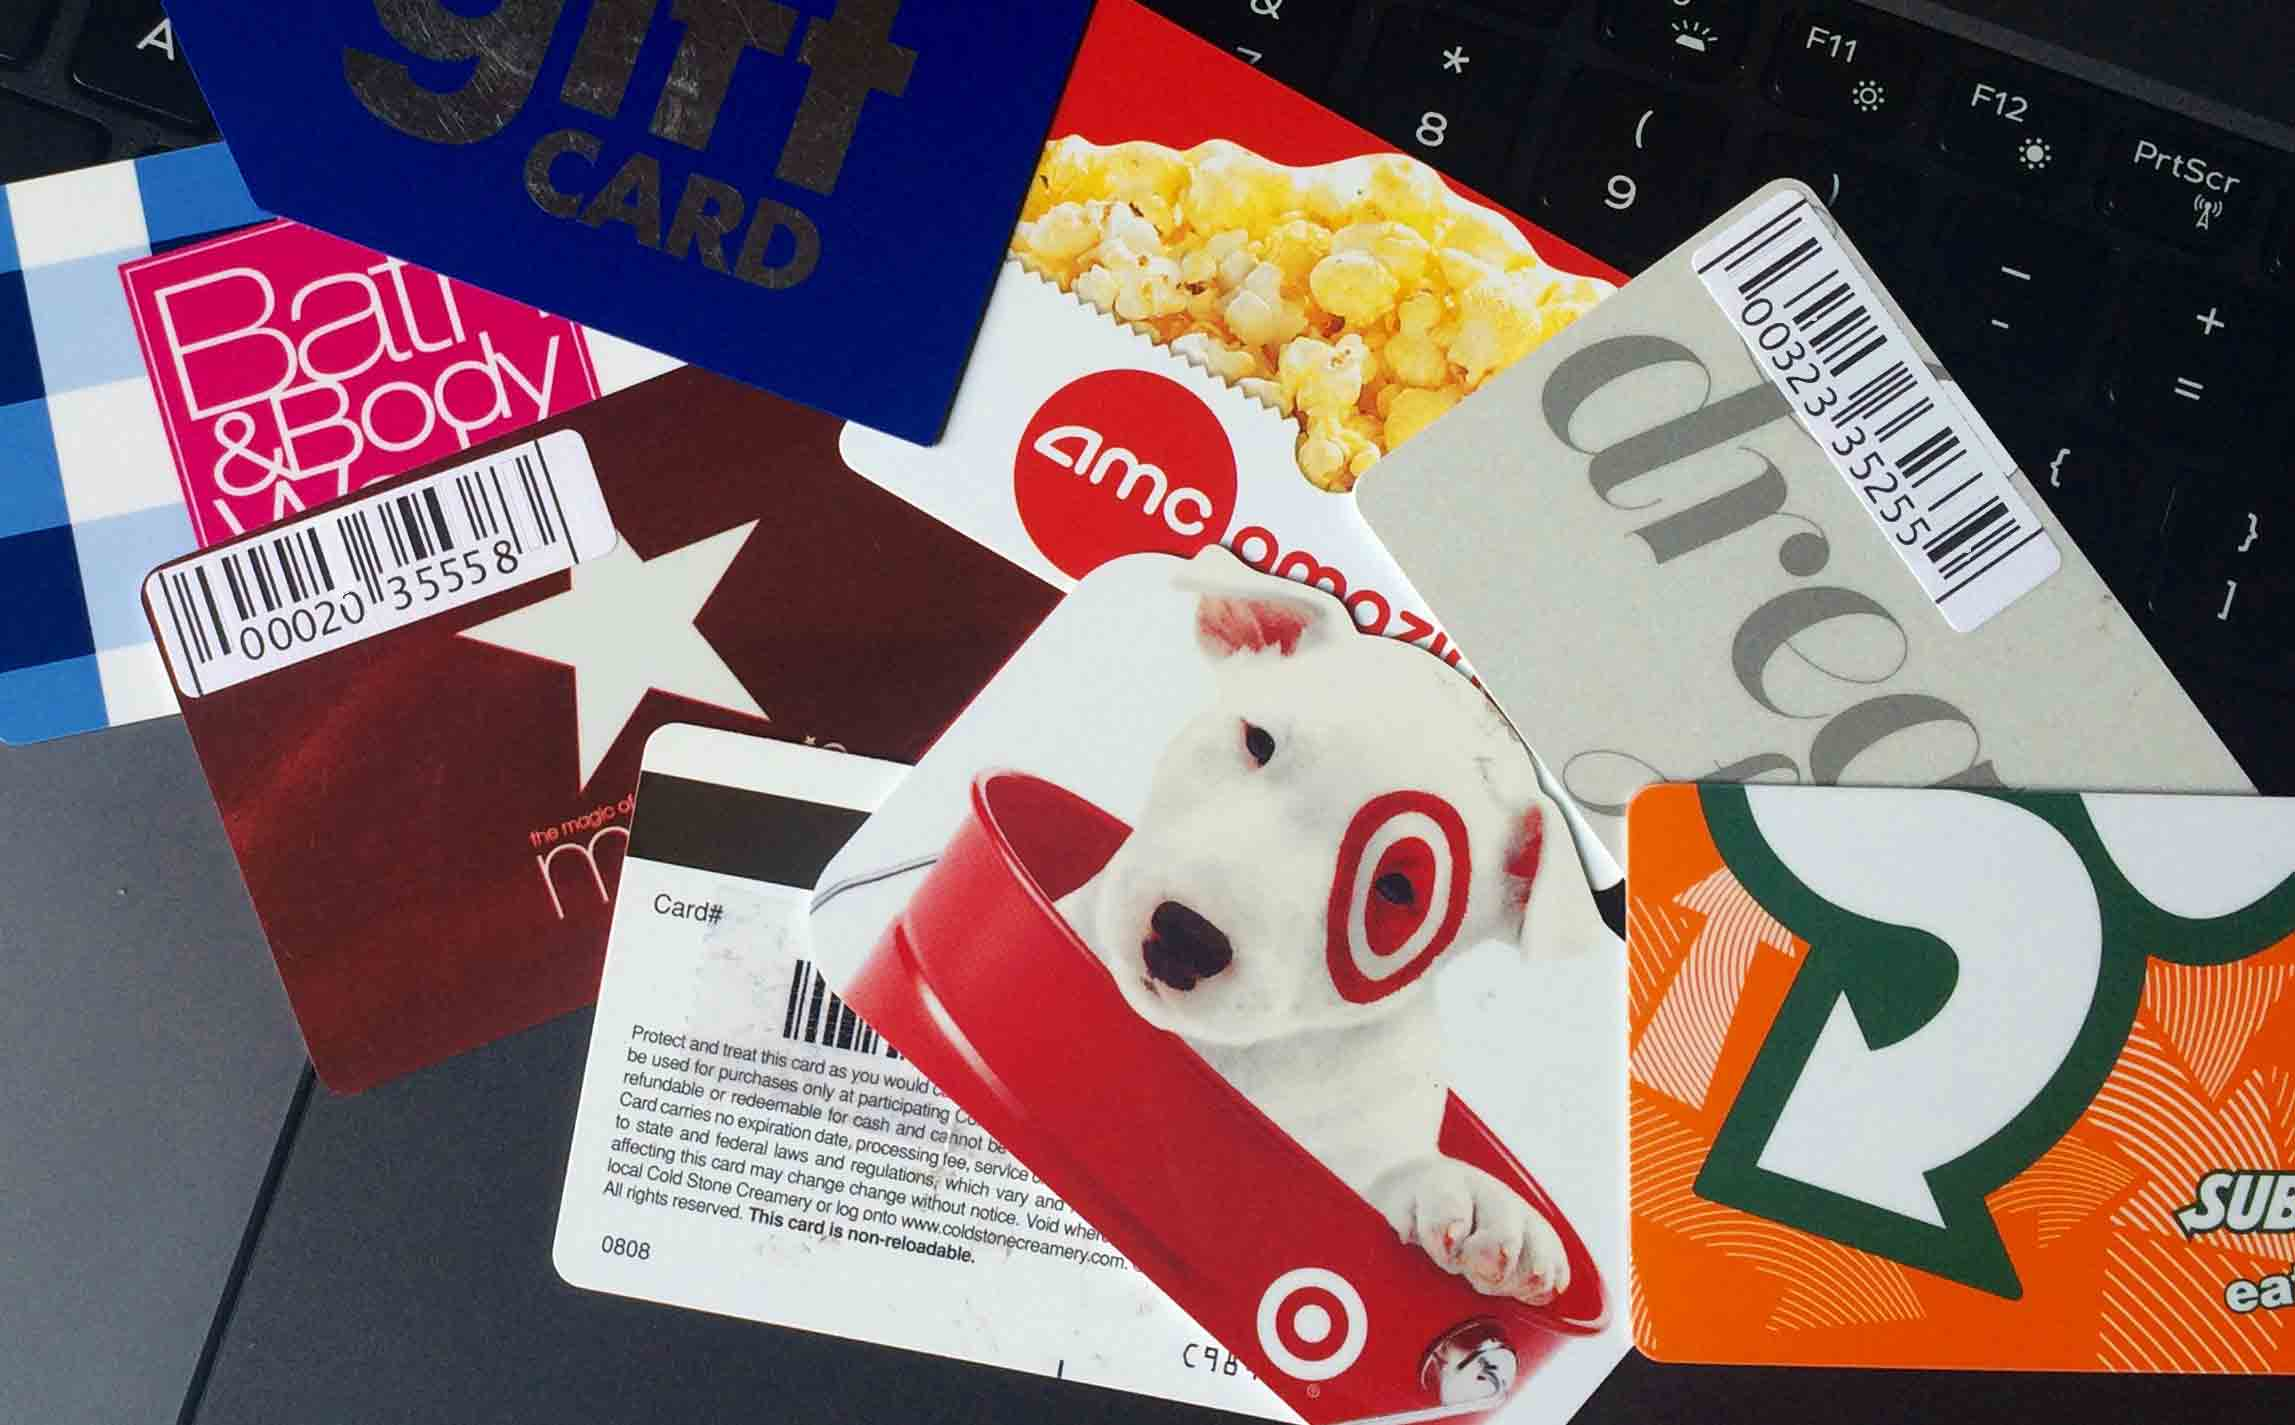 The Realities of Discount Gift Card Fraud (Don't be a Victim